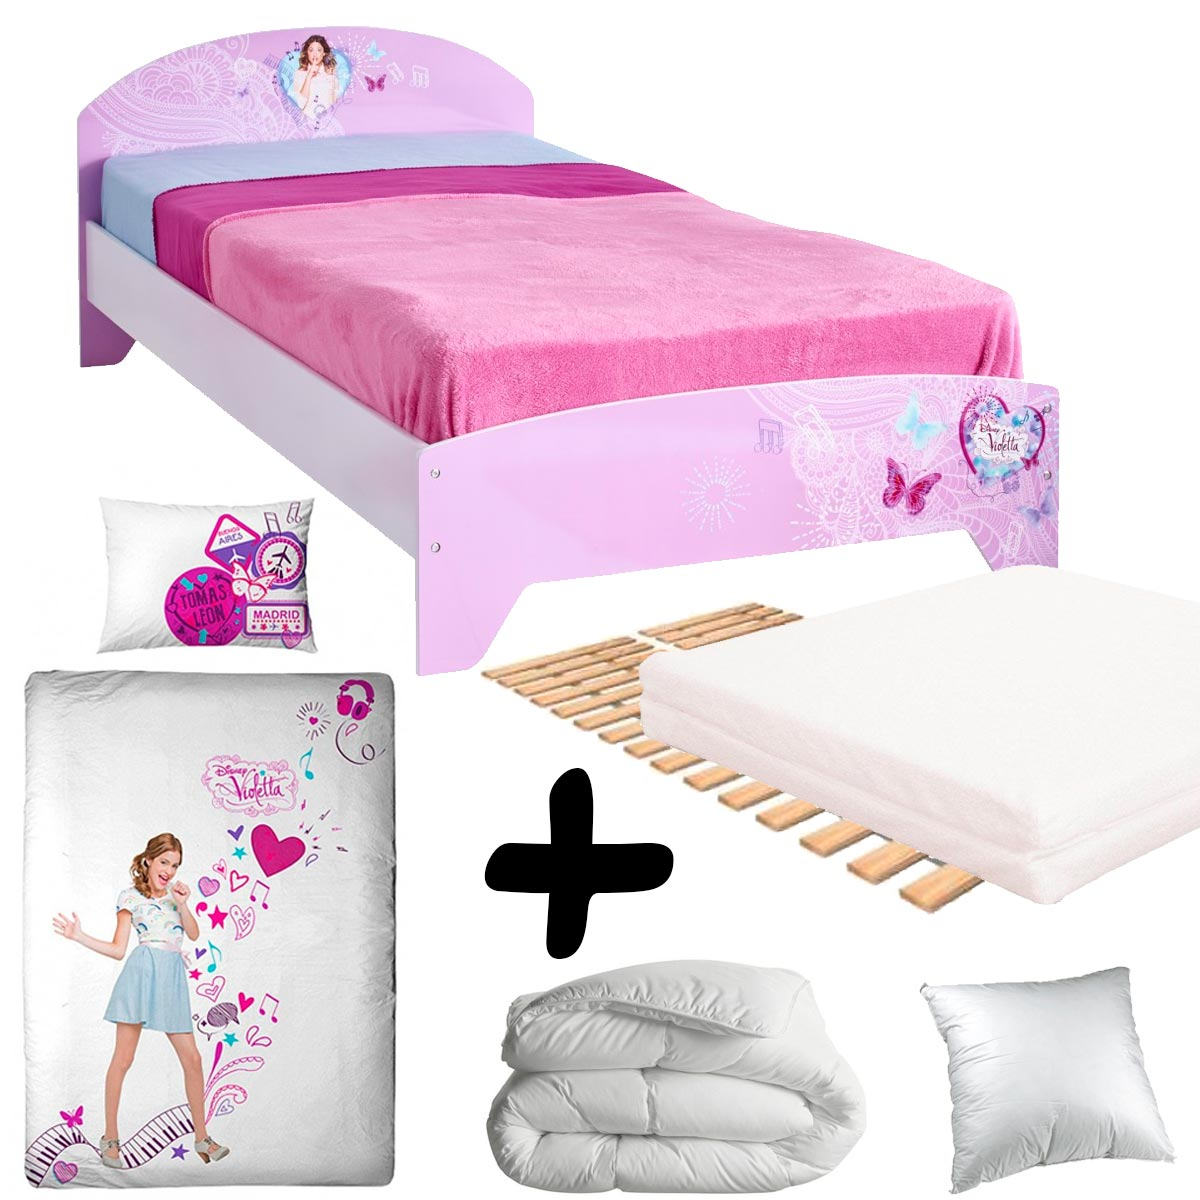 ordinary conforama matelas 1 personne 14 pack complet luxe lit violetta disney channel 190 90. Black Bedroom Furniture Sets. Home Design Ideas